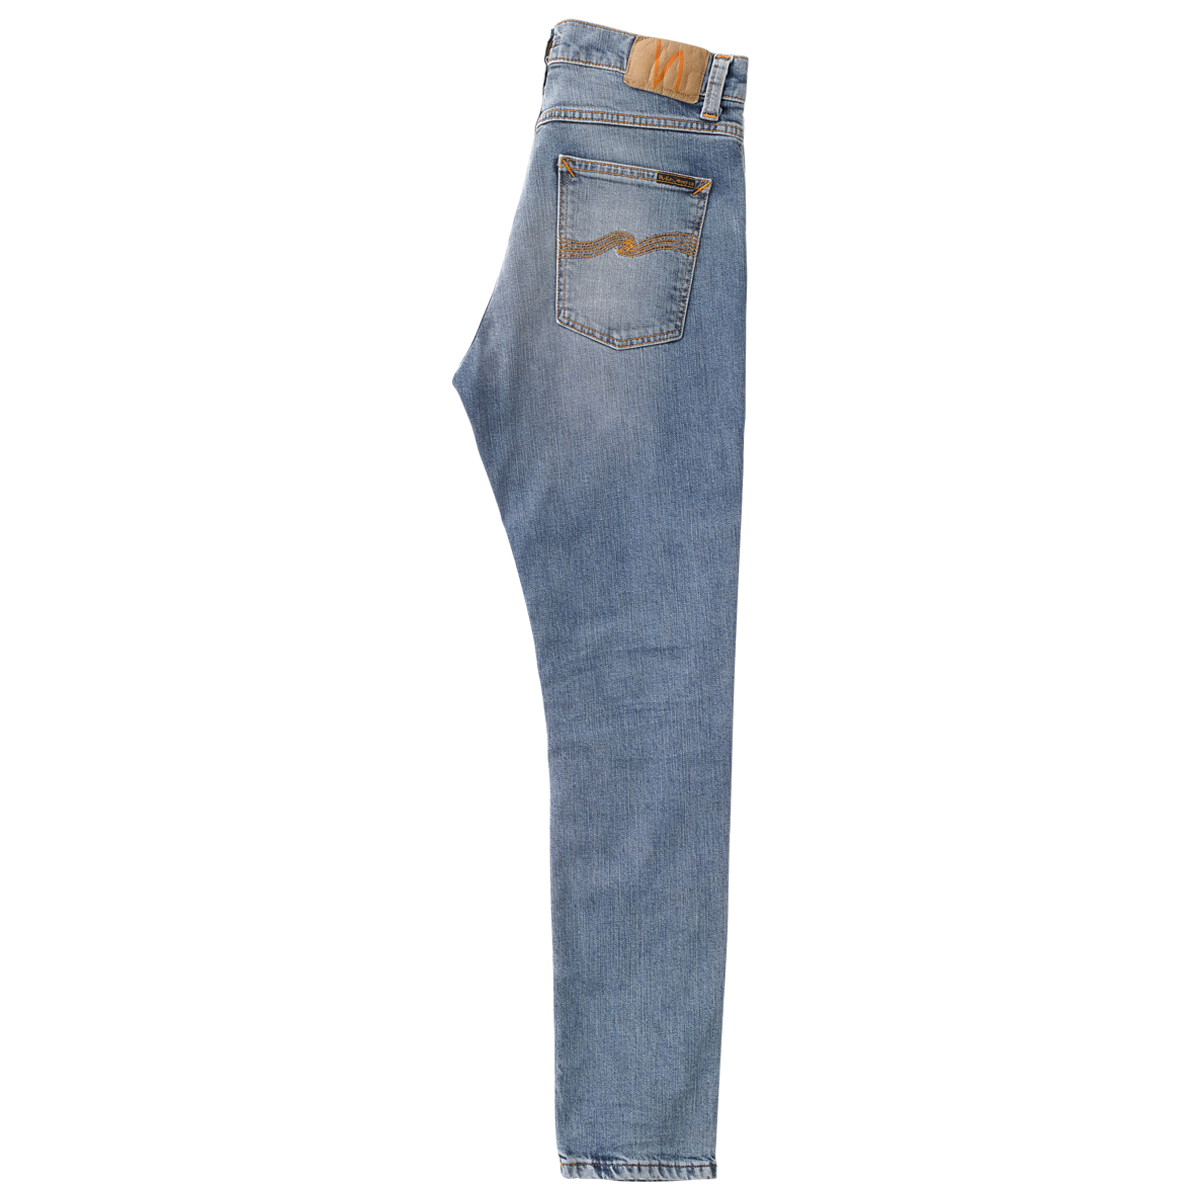 Nudie Jeans Co Steady Eddie II Pure Blue L30